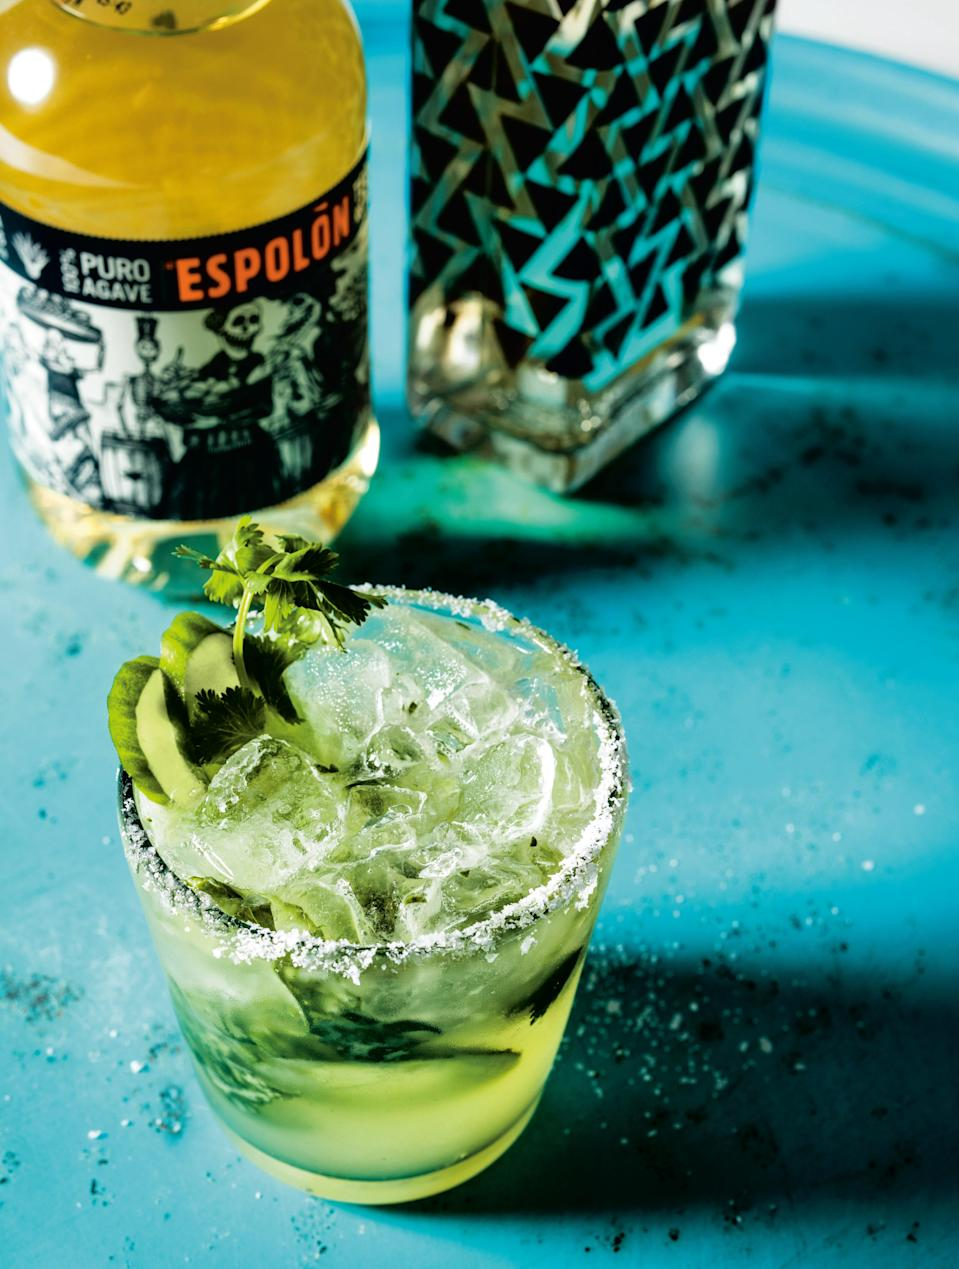 """You've probably found all the summer recipes you need in this gallery, but what about the drinks? This is a refreshing, summery spin on a margarita, with a touch of savory flavor that's great with <a href=""""https://www.epicurious.com/recipes/food/views/pulled-mushroom-tacos-salsa-guille?mbid=synd_yahoo_rss"""" rel=""""nofollow noopener"""" target=""""_blank"""" data-ylk=""""slk:tacos"""" class=""""link rapid-noclick-resp"""">tacos</a>. <a href=""""https://www.epicurious.com/recipes/food/views/cucumber-cilantro-margarita-trejos-tacos?mbid=synd_yahoo_rss"""" rel=""""nofollow noopener"""" target=""""_blank"""" data-ylk=""""slk:See recipe."""" class=""""link rapid-noclick-resp"""">See recipe.</a>"""